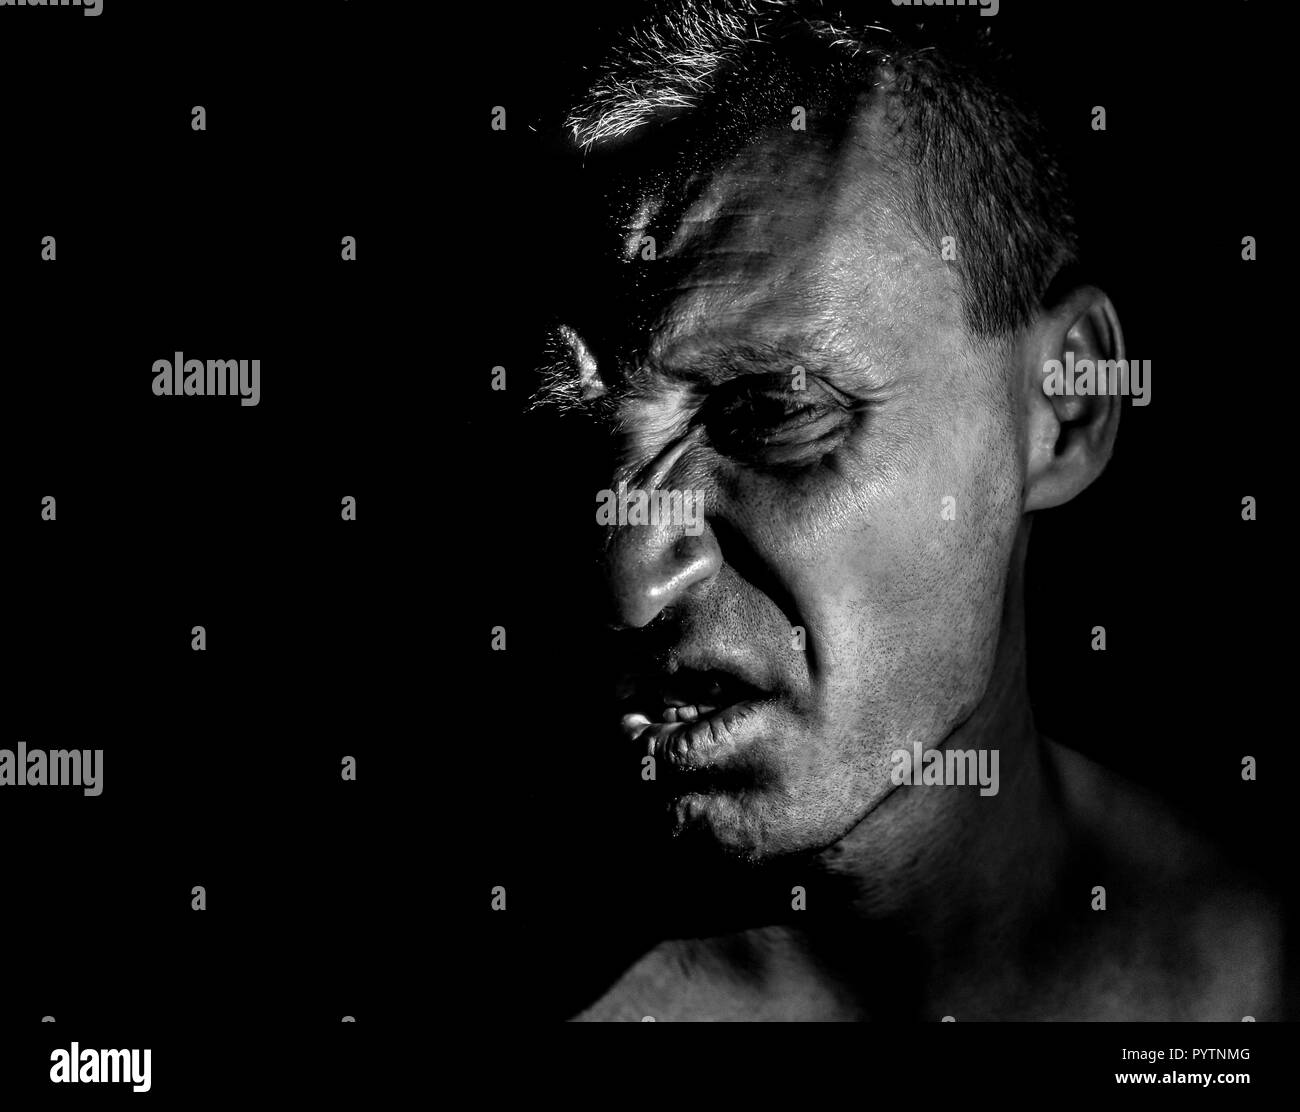 Stylish portrait of adult caucasian man with very angry face and who seems like maniac or devil. He screams at someone. Black and white shot, low-key  - Stock Image